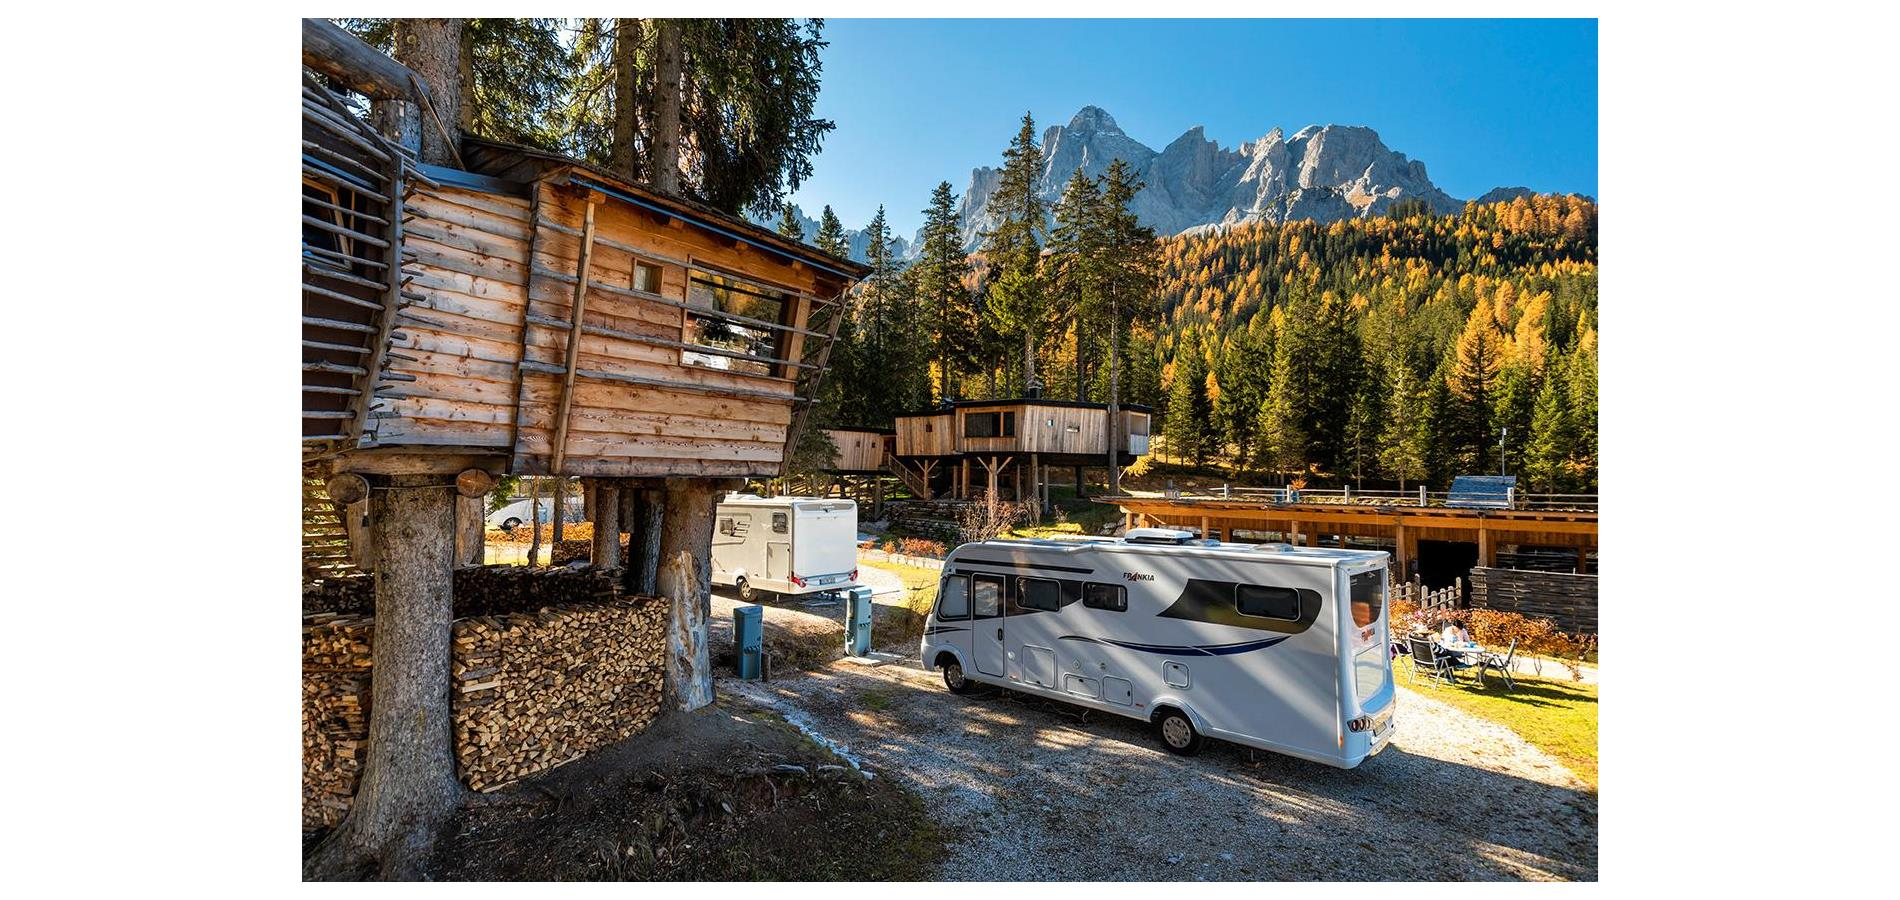 cps-camping-herbst-miana-2017-0002